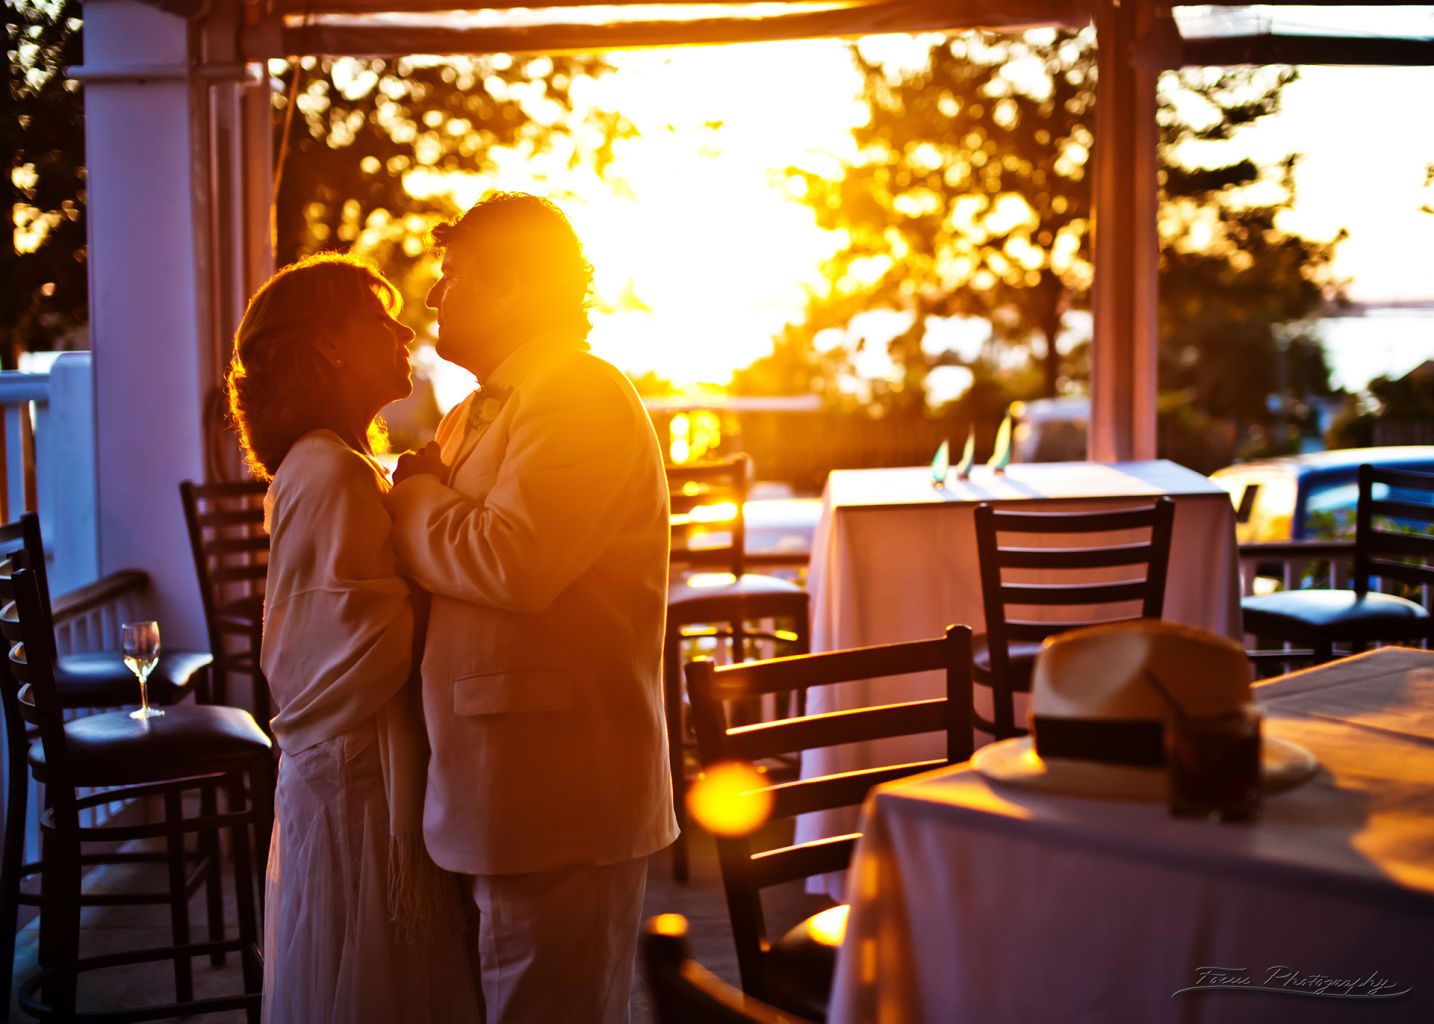 Bride and groom embracing each other at reception with sunset